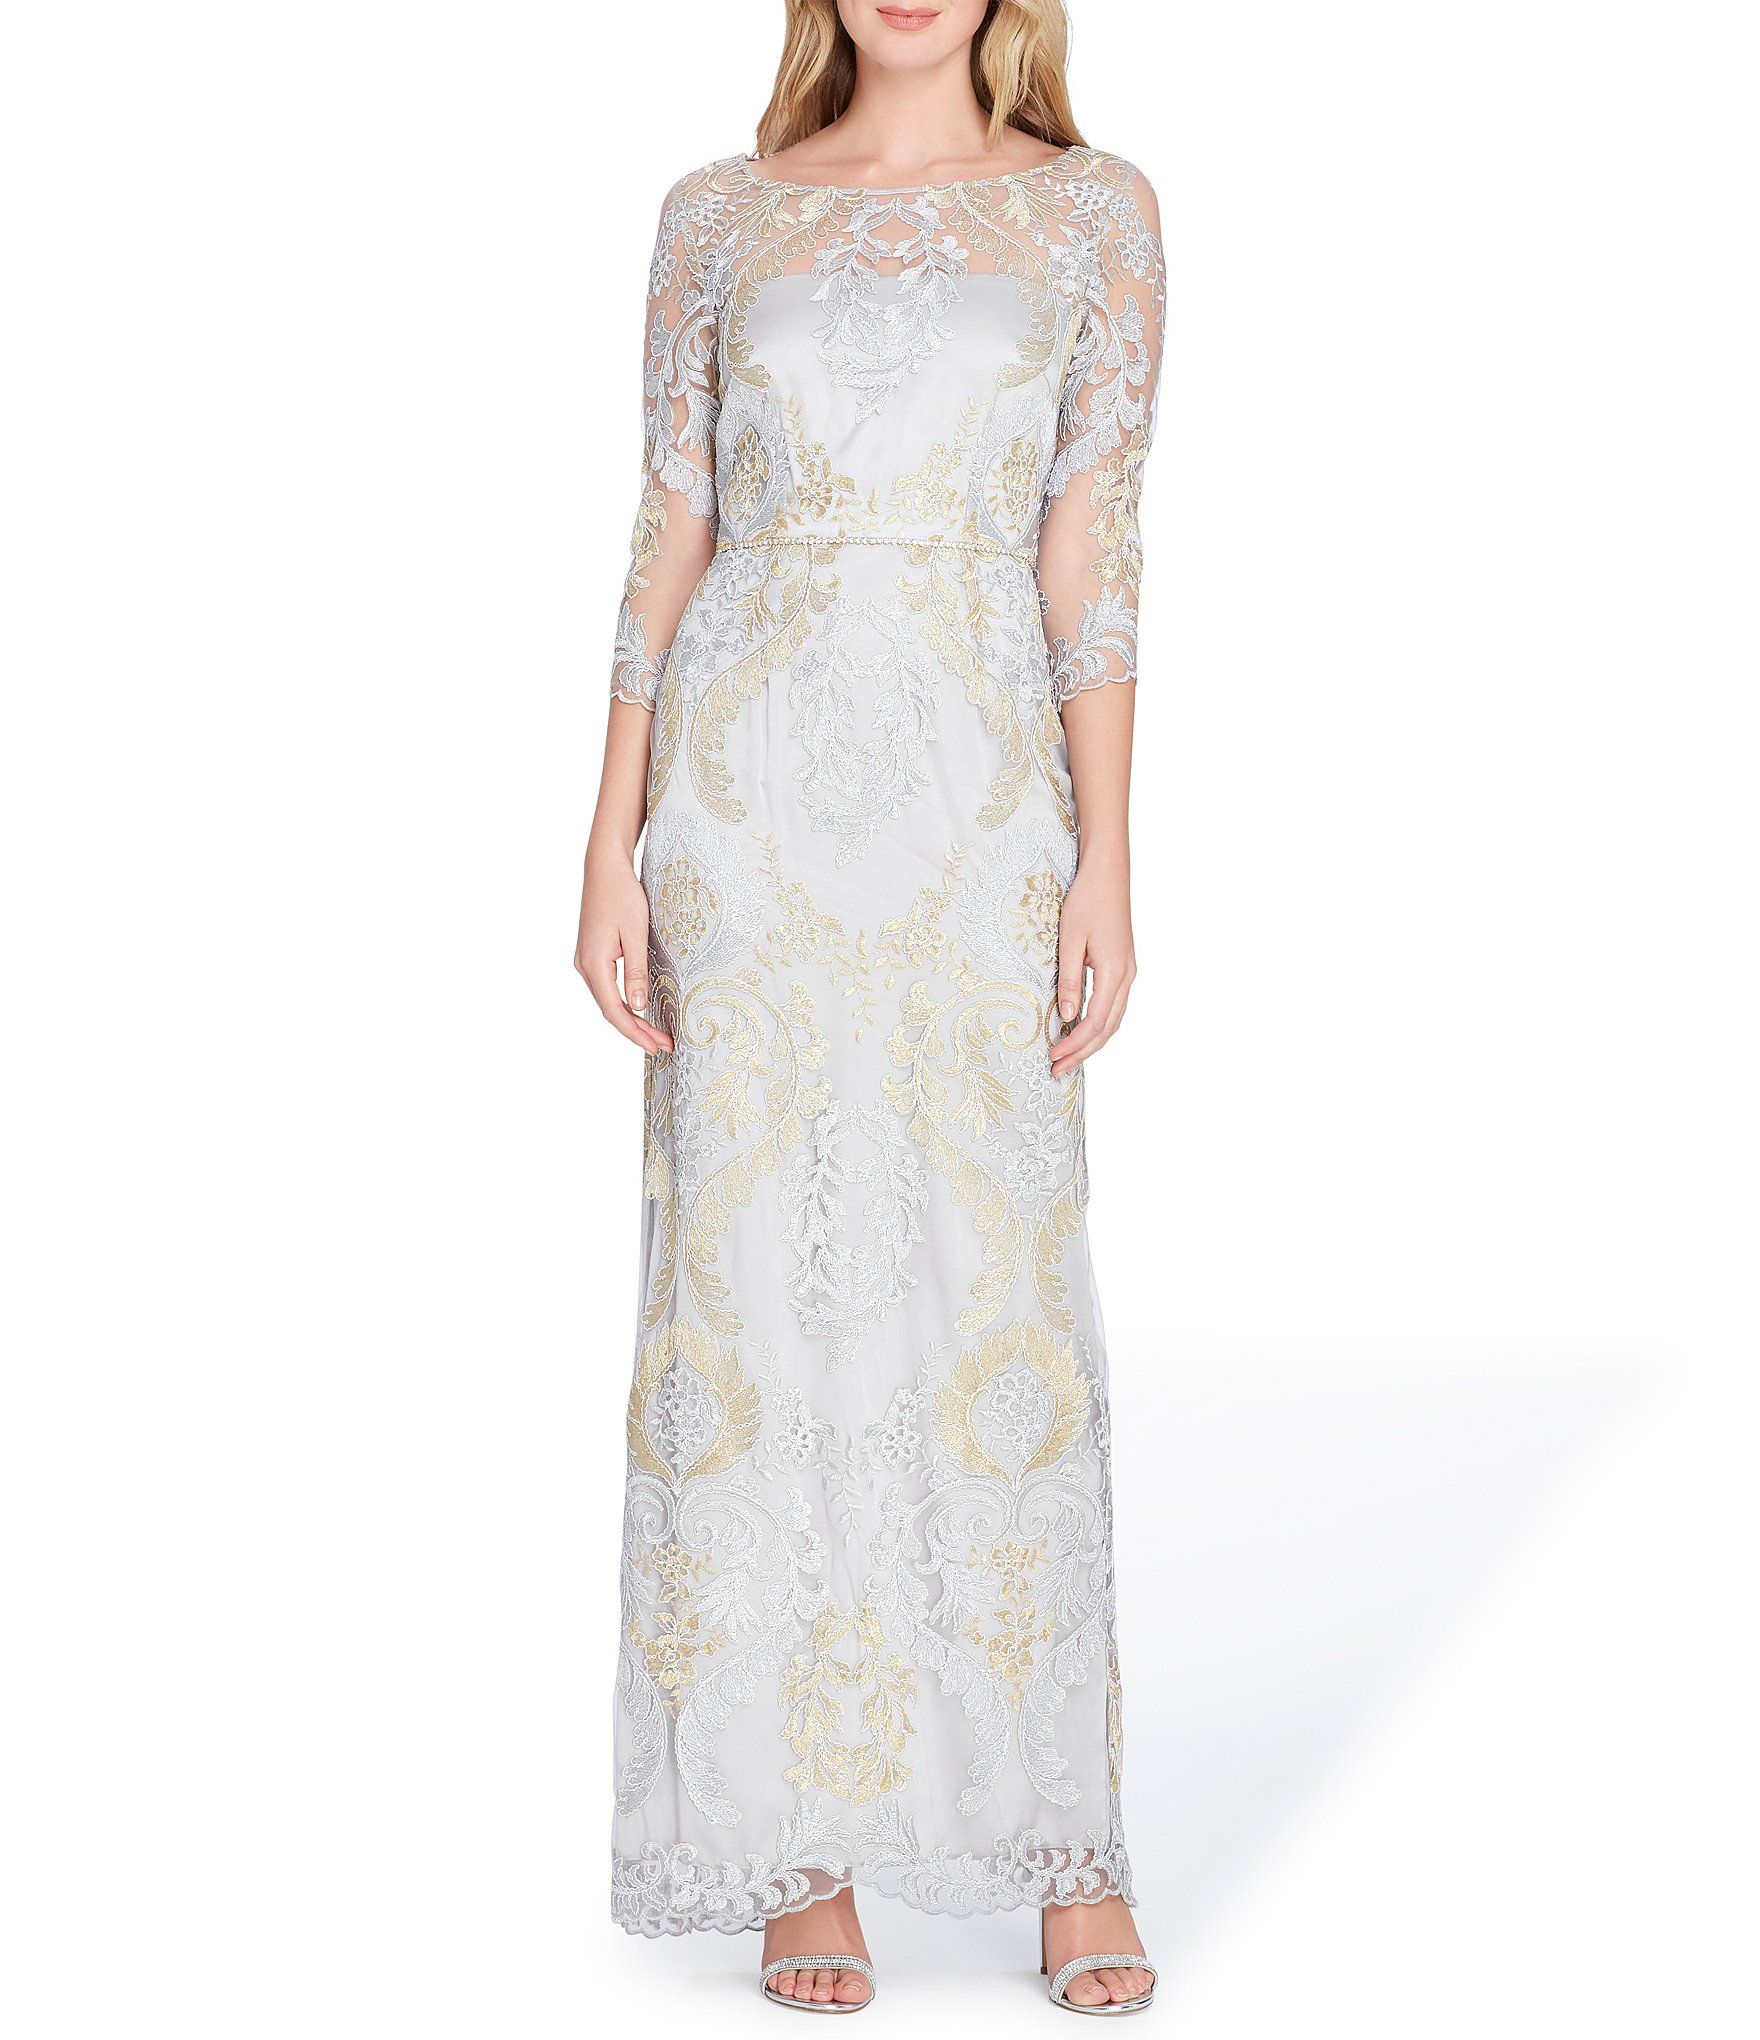 Tahari Asl Metallic Embroidery Gown Dillards Embroidered Gown Gowns Womens Dresses [ 2040 x 1760 Pixel ]